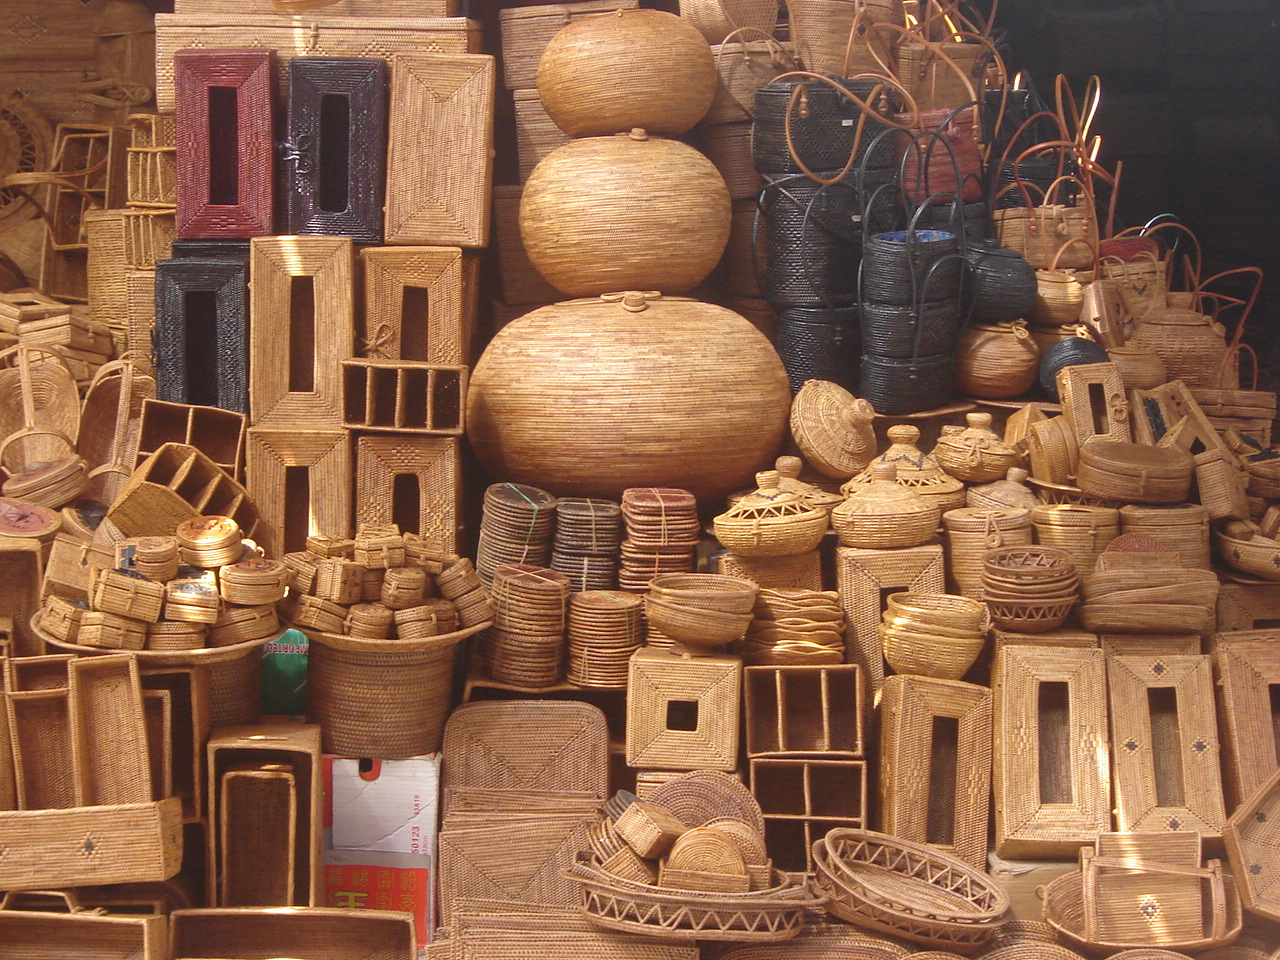 TRADITIONAL HANDICRAFTS OF VIETNAM